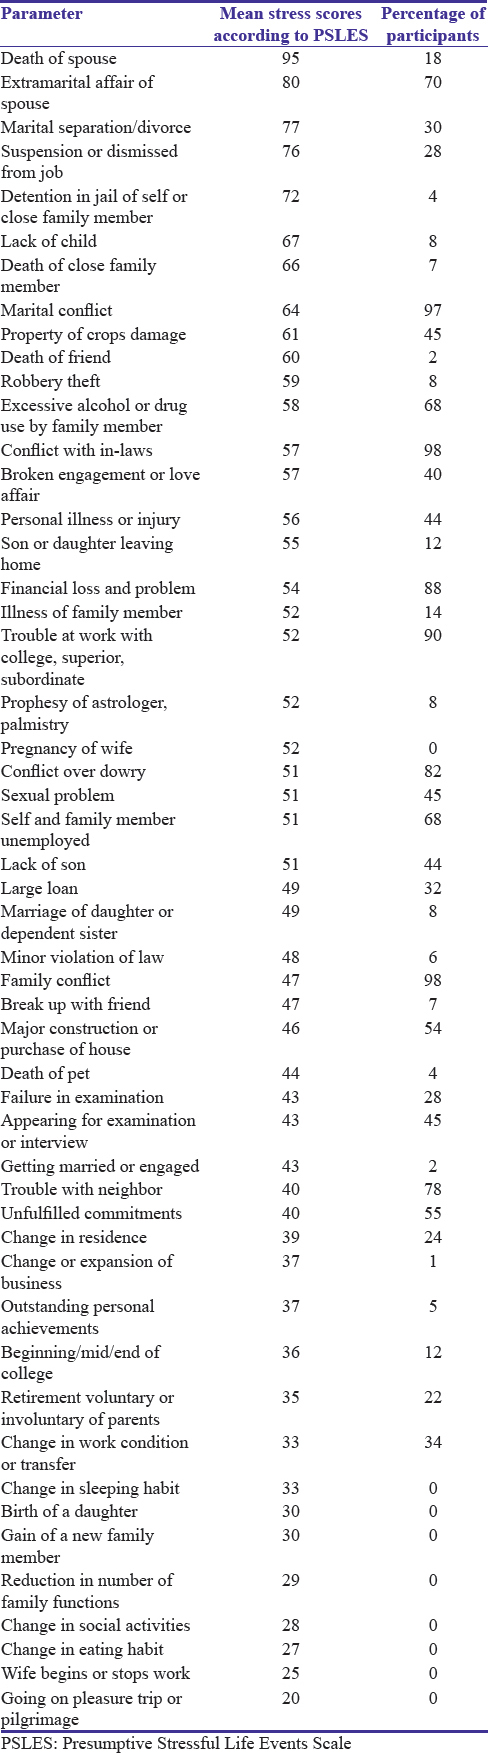 Table 4: Percentage of participants who gave a positive response according to different parameters of Presumptive Stressful Life Events Scale scores